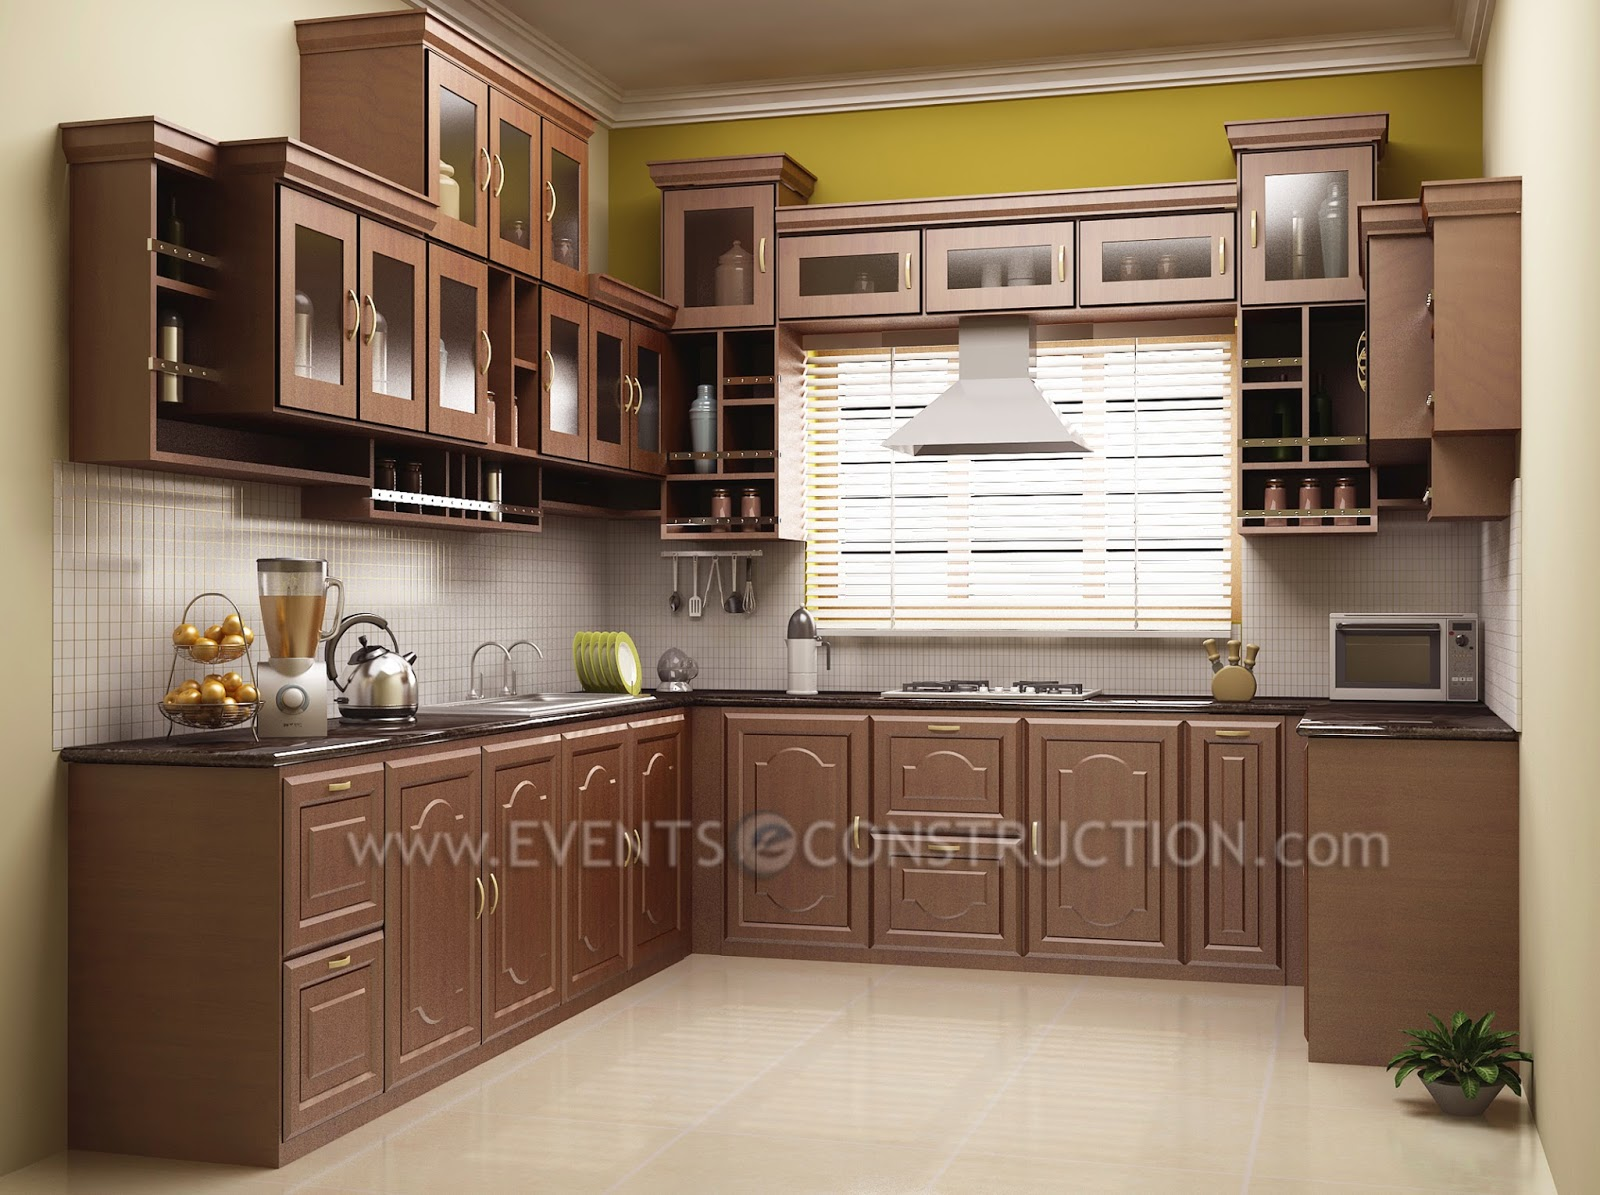 kerala home kitchen designs evens construction pvt ltd kerala kitchen interior 4930